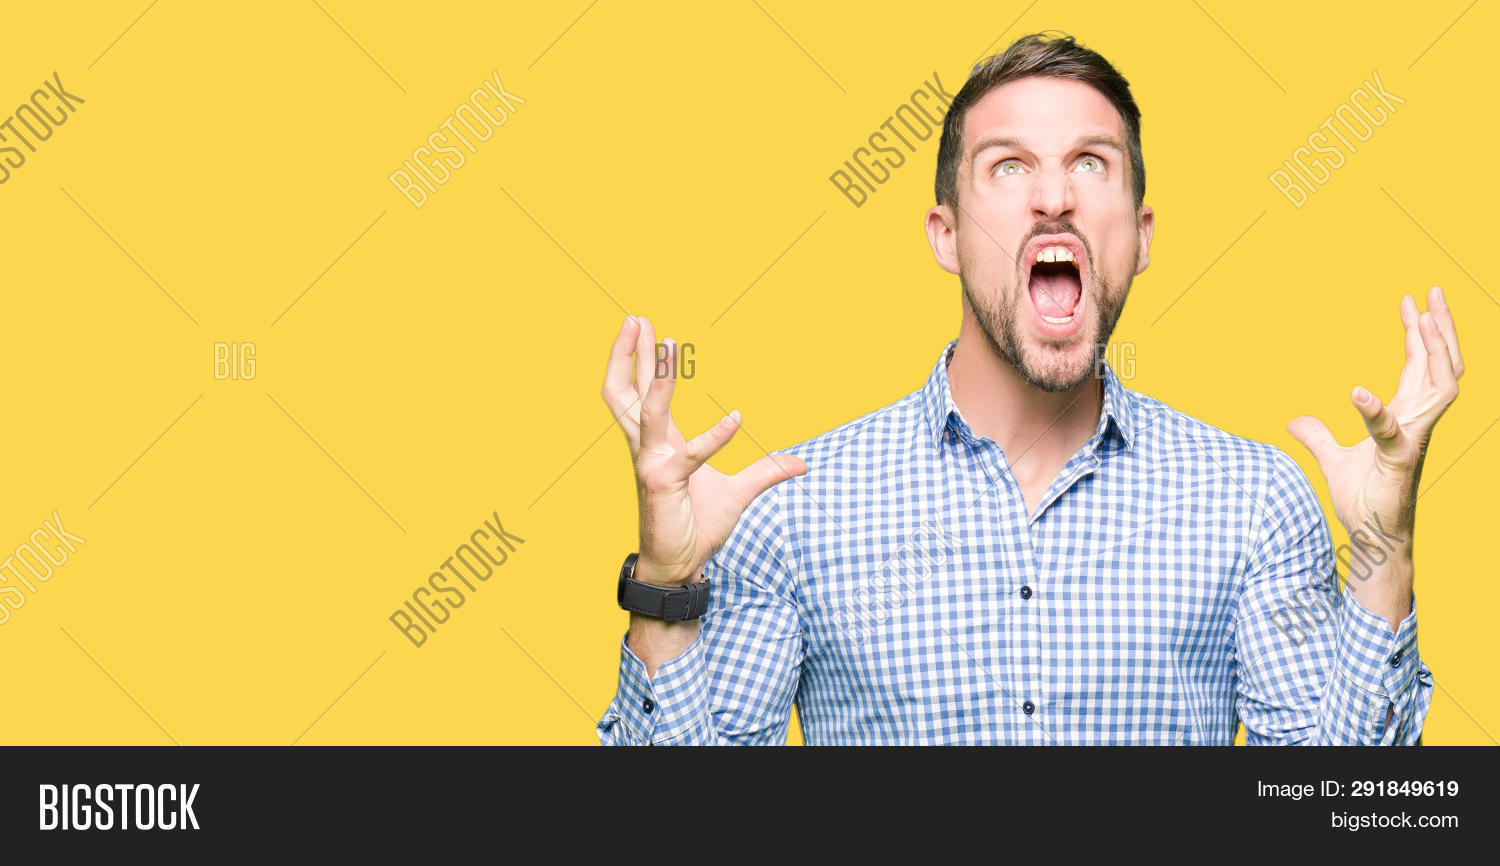 adult,aggressive,anger,angry,arms,background,bad,beard,blue eyes,boss,business,caucasian,crazy,elegant,emotion,emotional,expression,face,frustrated,frustration,full body,furious,gesture,hand,handsome,isolated,mad,man,manager,mouth,negative,over,portrait,rage,raised,sad,scream,shirt,shout,shouting,standing,stress,stressed,studio,unhappy,upset,wearing,yelling,young